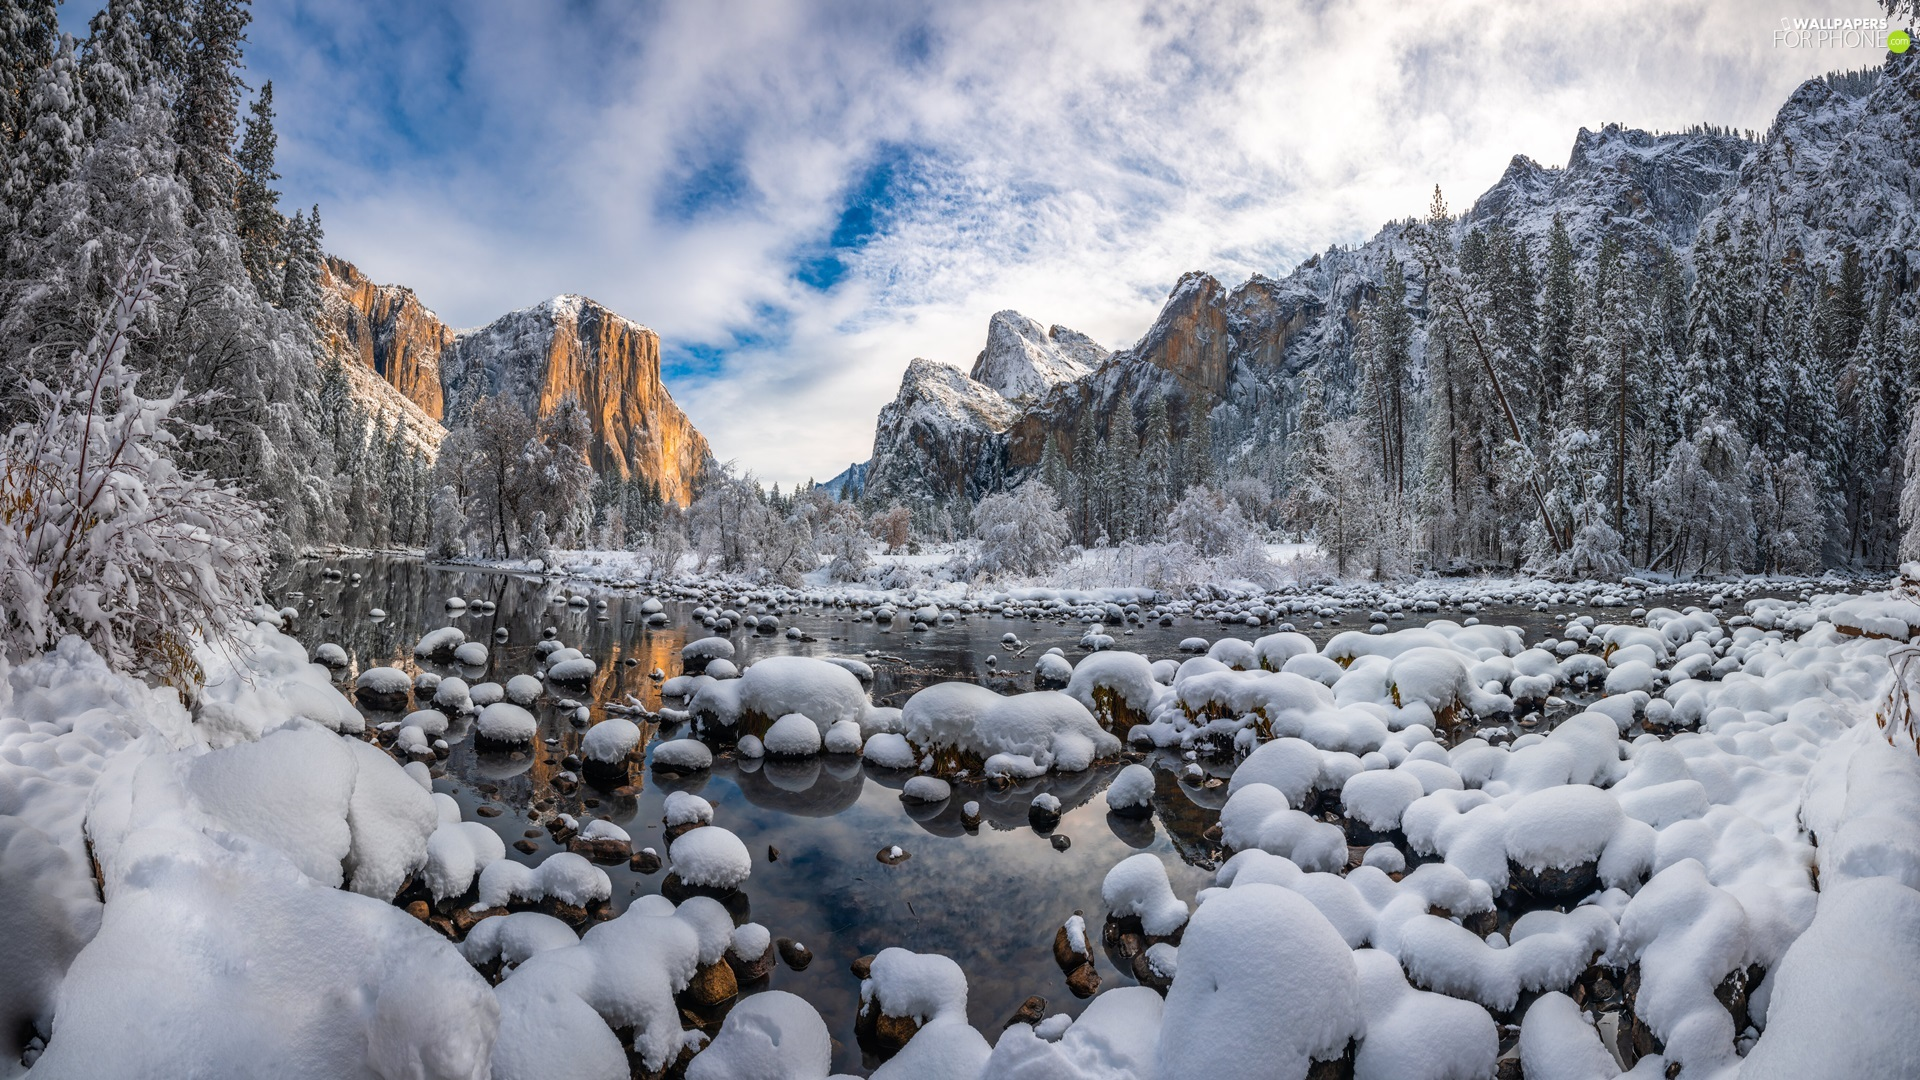 Stones, State of California, winter, viewes, Mountains, The United States, Yosemite National Park, clouds, trees, Merced River